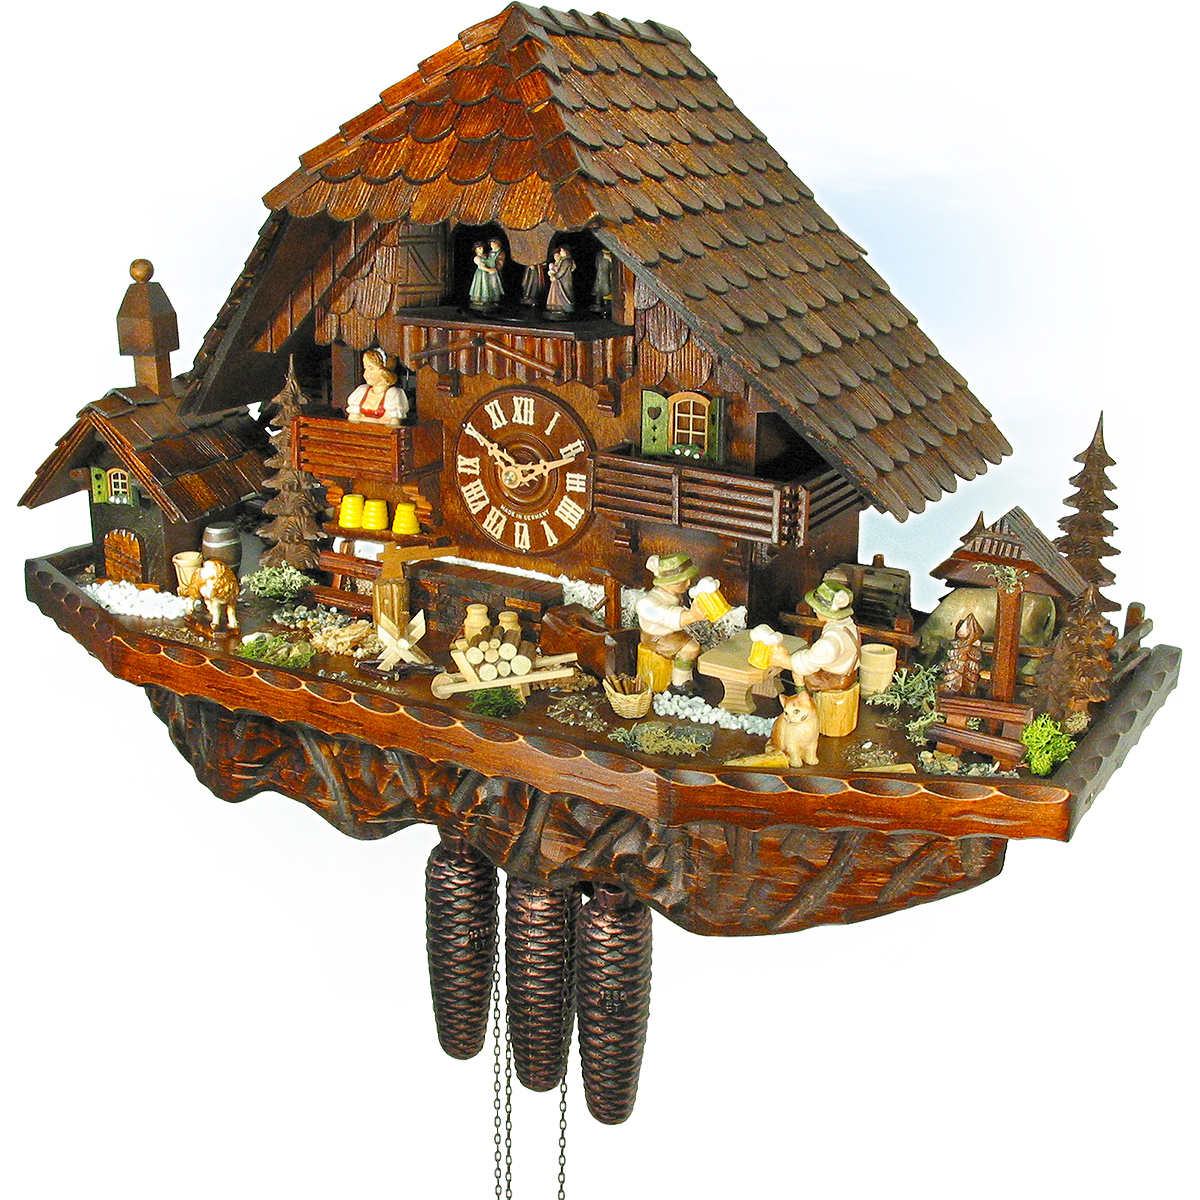 Cuckoo Clocks As Black Forest House In Chalet Style | Your Cuckoo Clock.com